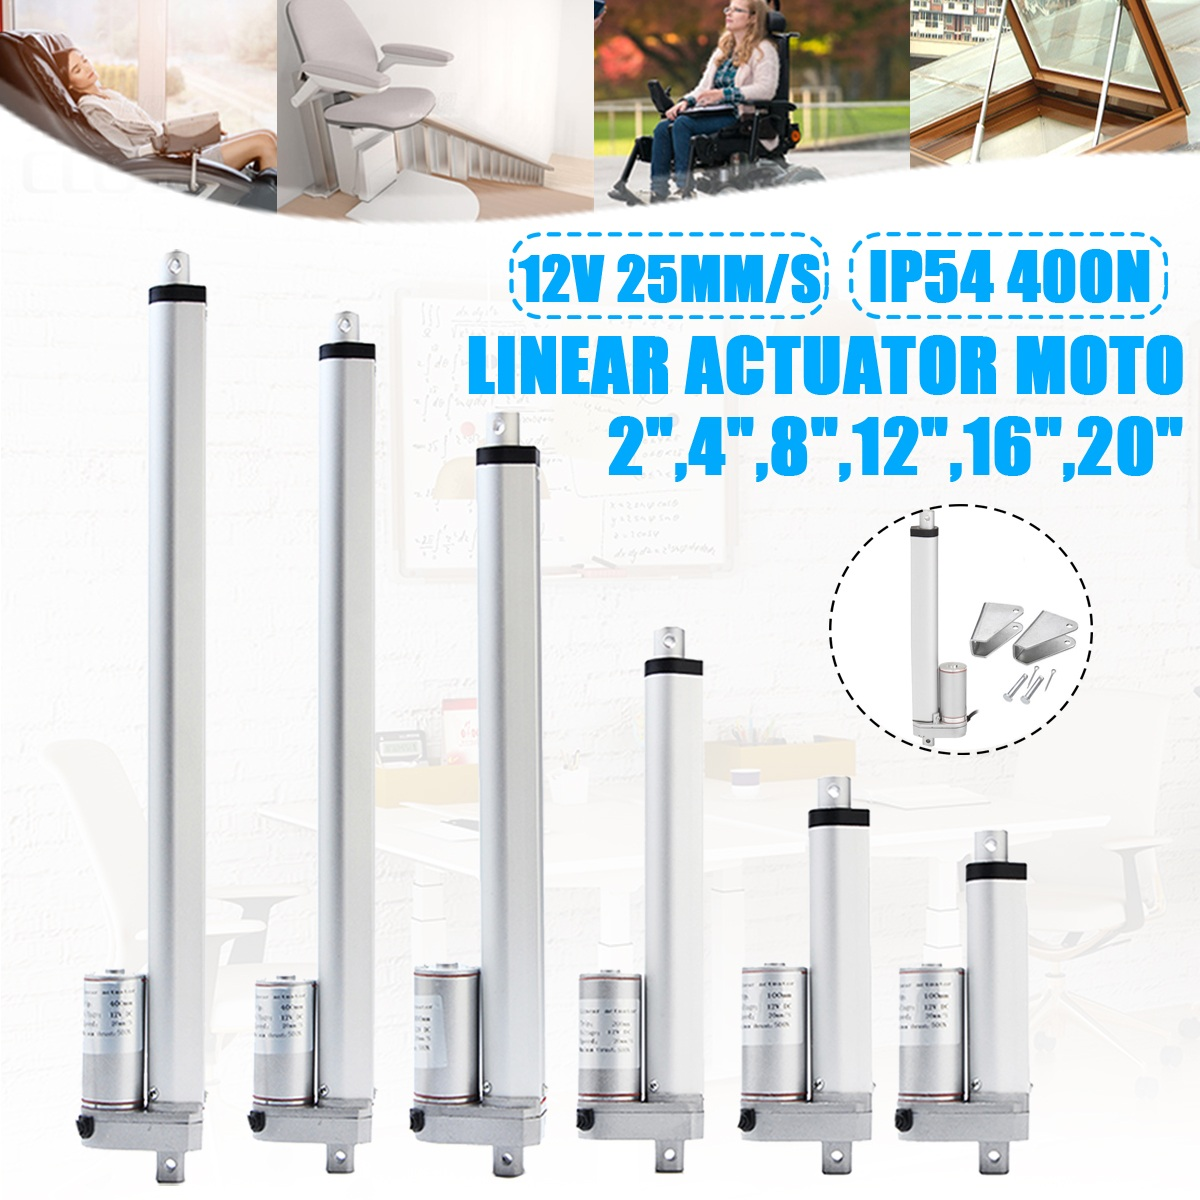 IP54 400N <font><b>12V</b></font> <font><b>25mm</b></font>/s DC <font><b>12V</b></font> Electric <font><b>Motor</b></font> Linear Actuator For lectric Self Unicycle Scooter Input Voltage Range Linear Actuator image